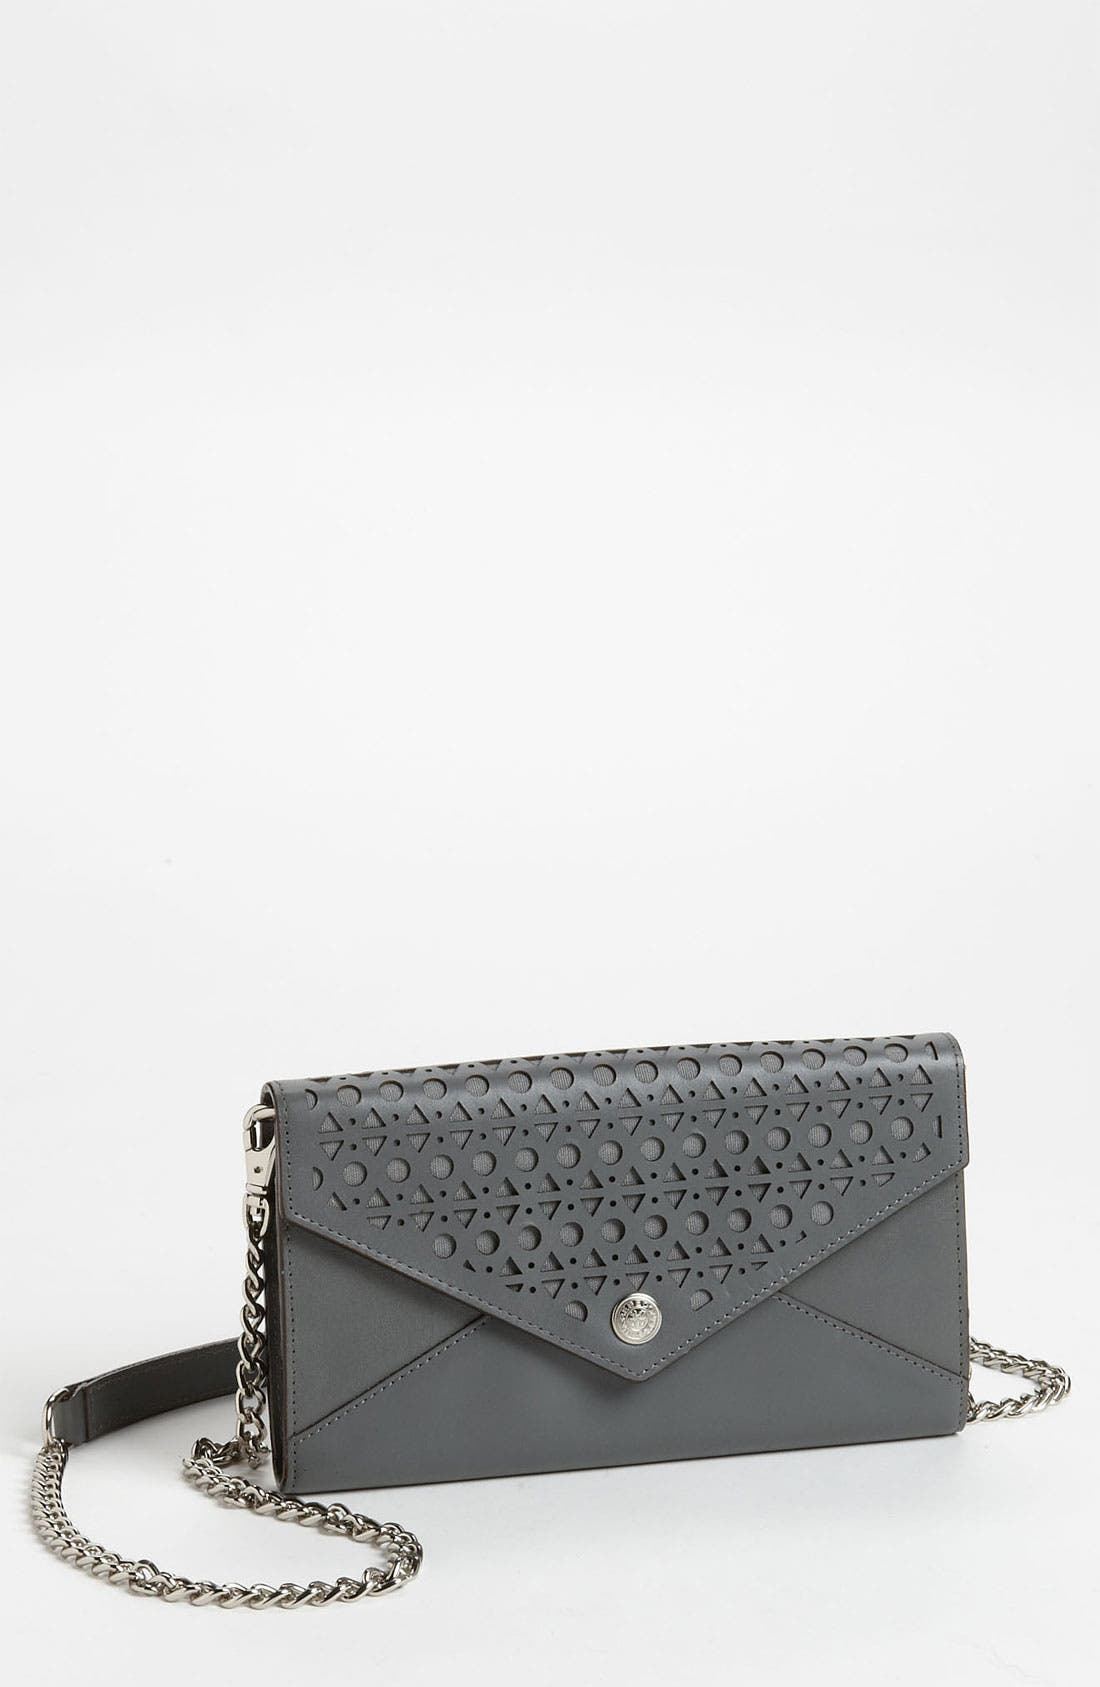 Alternate Image 1 Selected - Rebecca Minkoff Laser Cut Wallet on a Chain